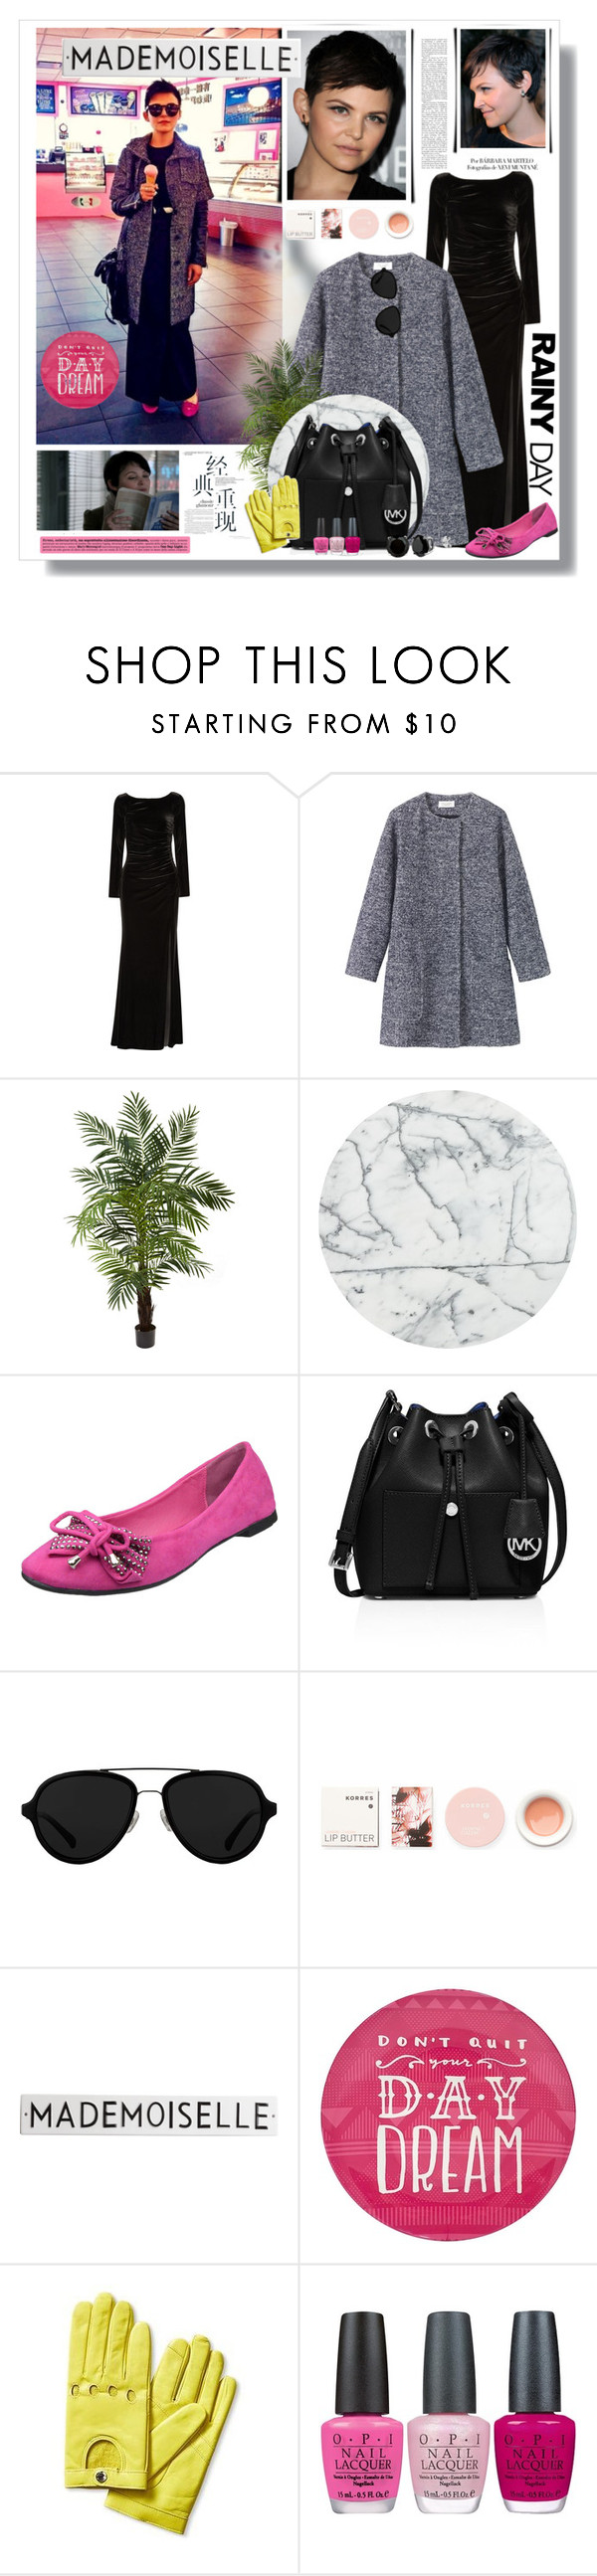 """""""Celebrity style"""" by bellamonica ❤ liked on Polyvore featuring Badgley Mischka, Toast, Nearly Natural, CB2, MICHAEL Michael Kors, 3.1 Phillip Lim, Arco, Korres, Rosanna and Simple by Design"""